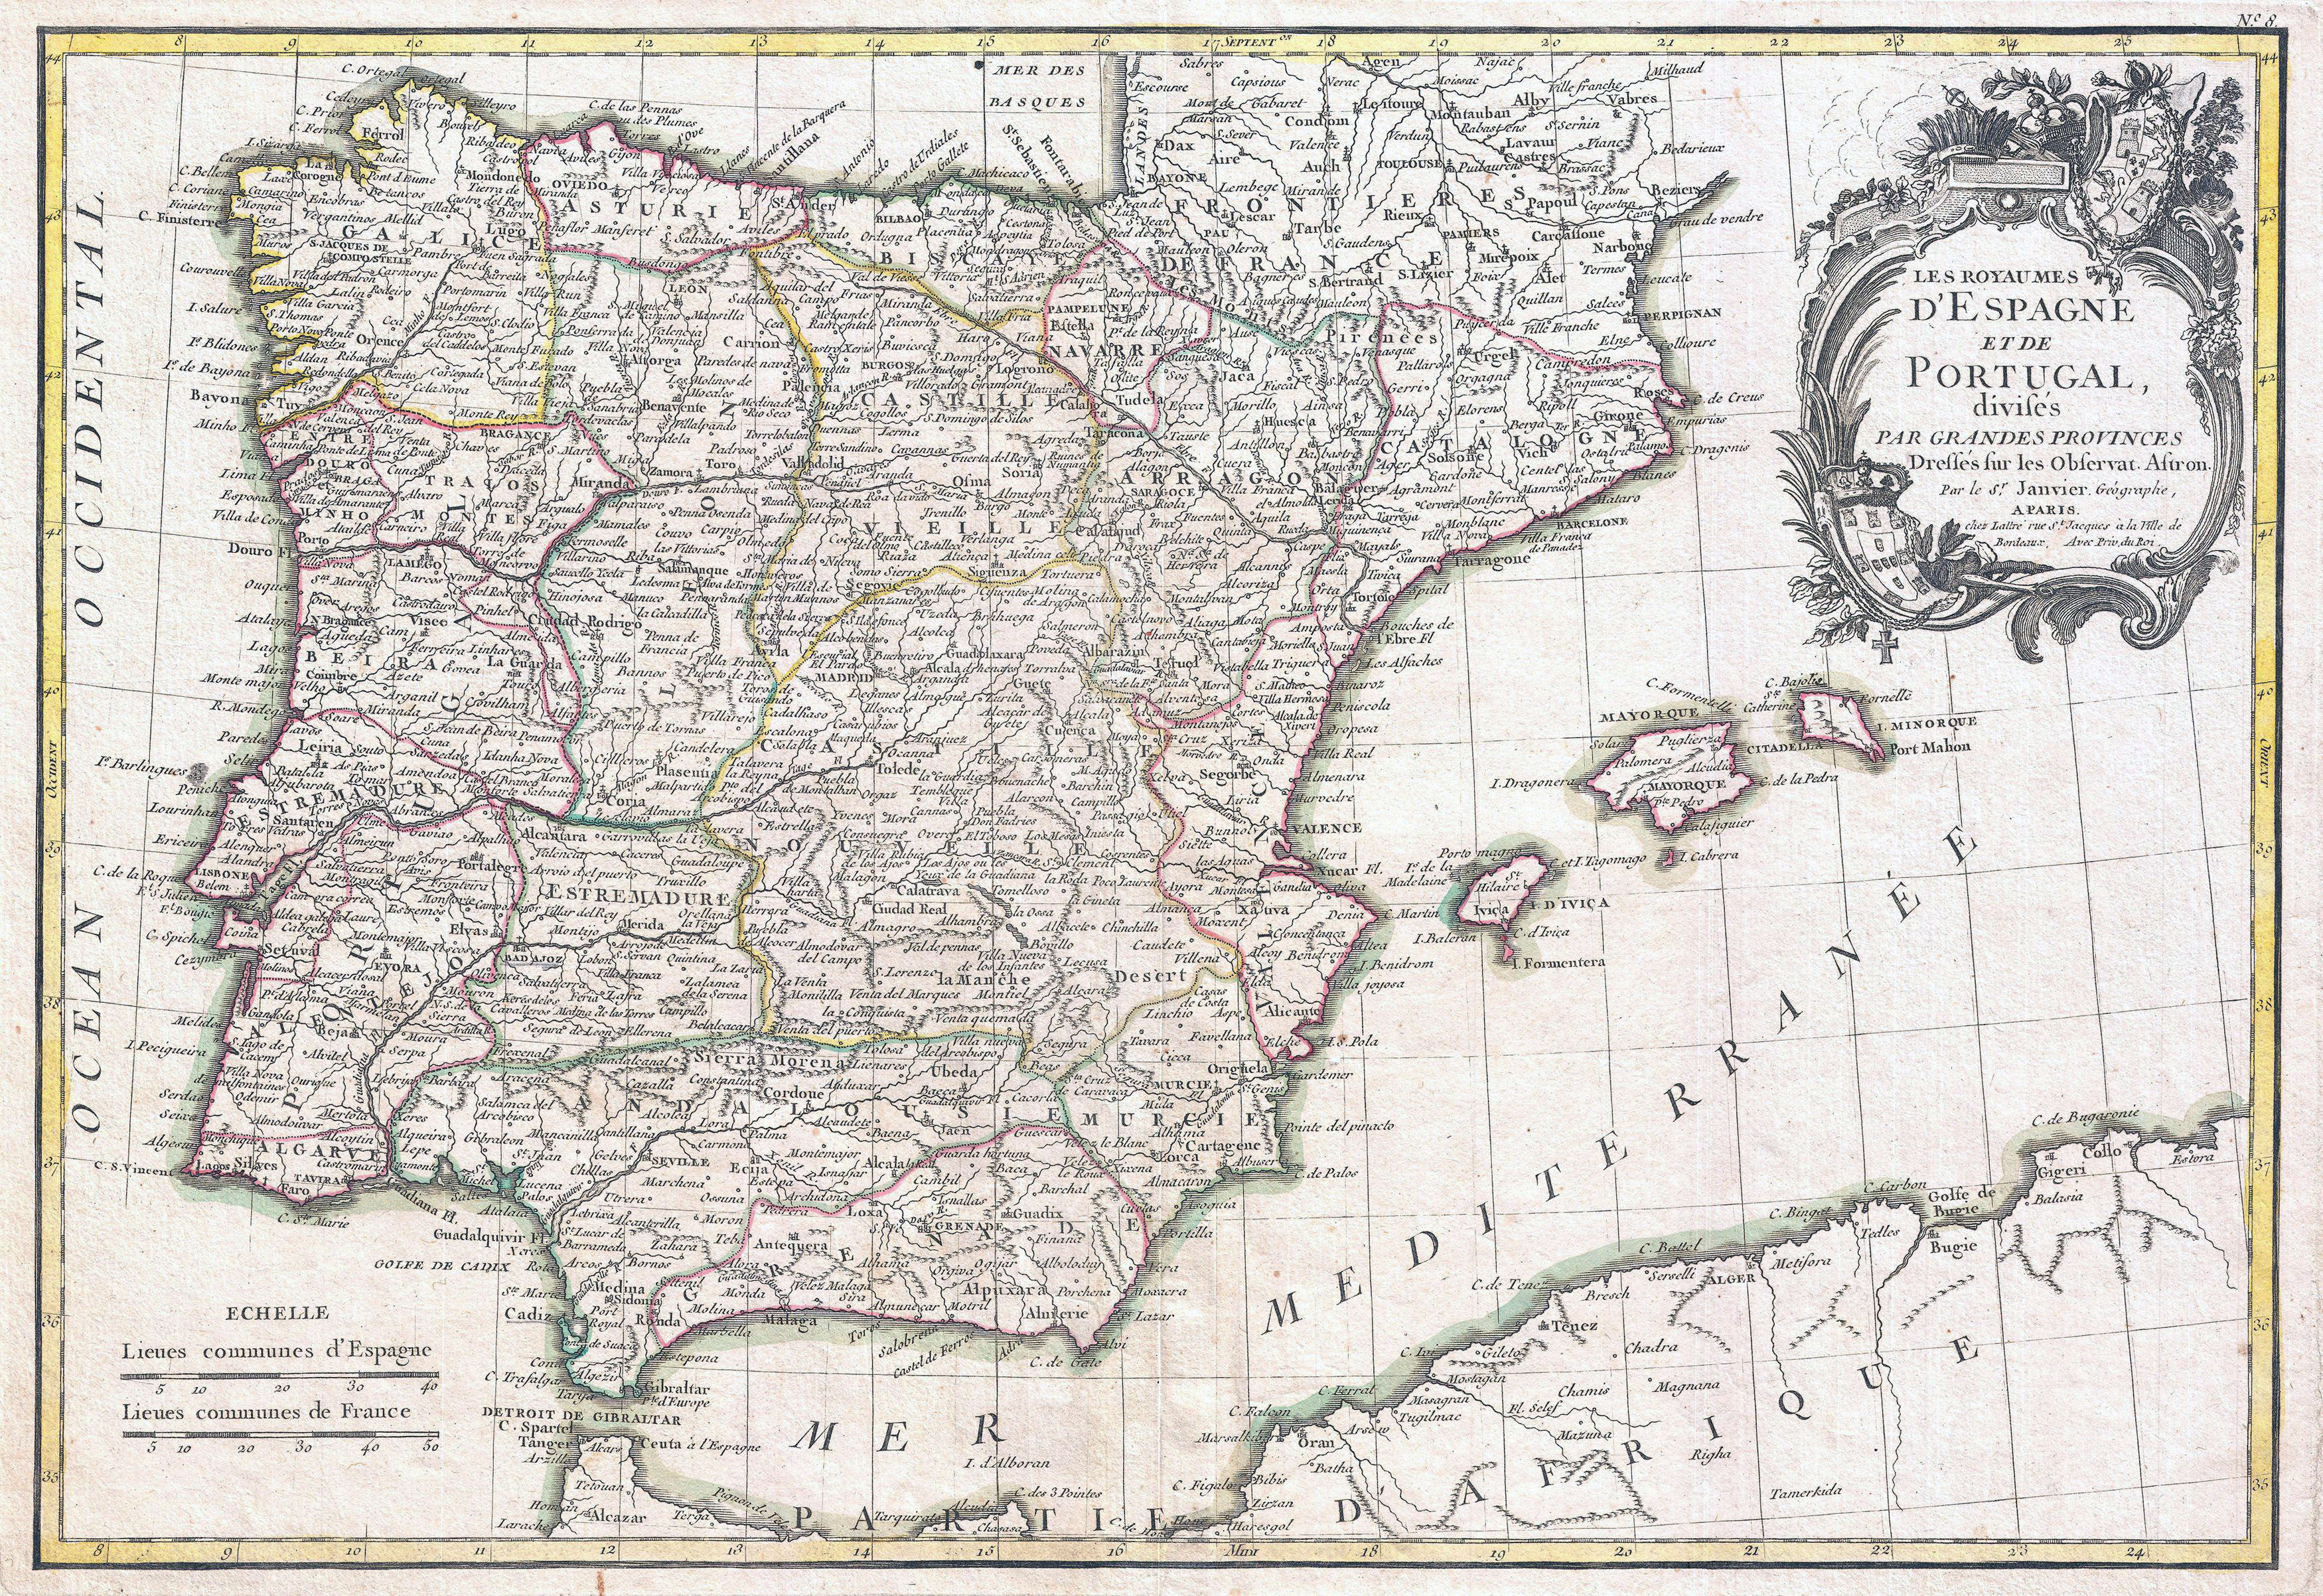 Map Of Spain Old.Large Detailed Old Political And Administrative Map Of Spain And